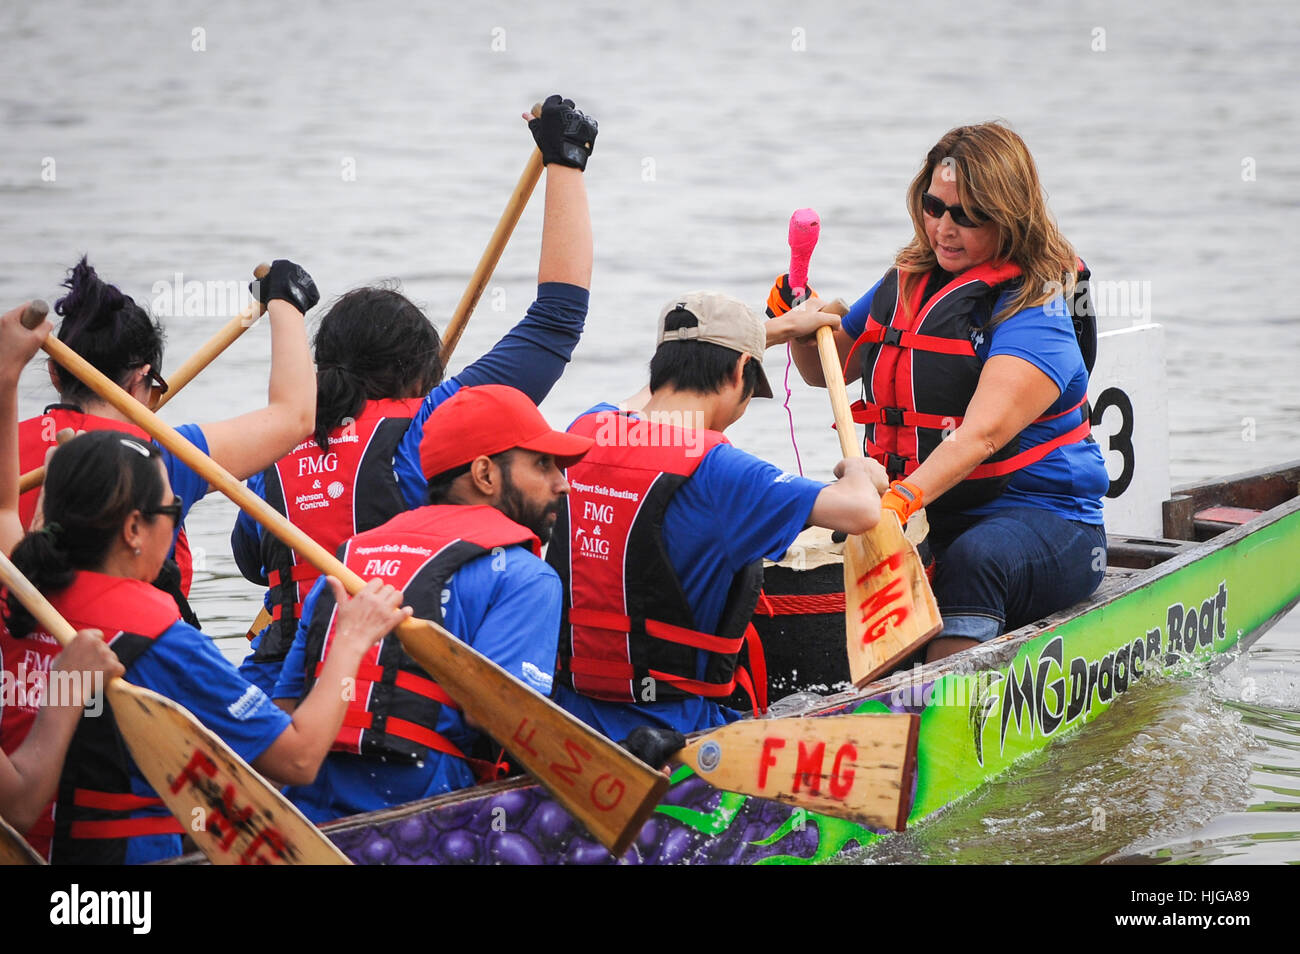 Red river in Winnipeg, MB, Canada - Team building activity